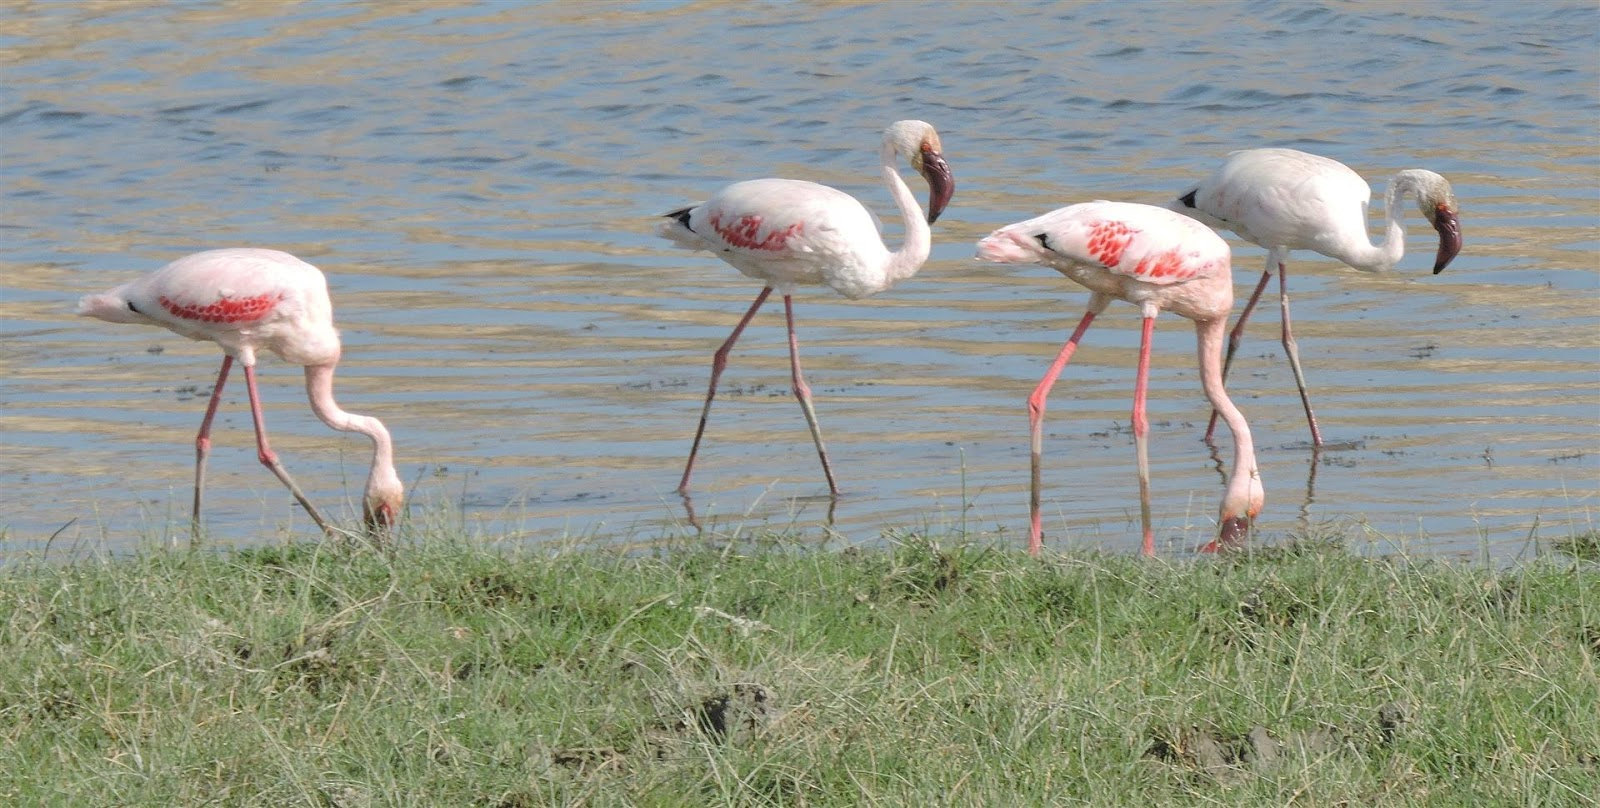 Lesser flamingo and more at Khawr Rori